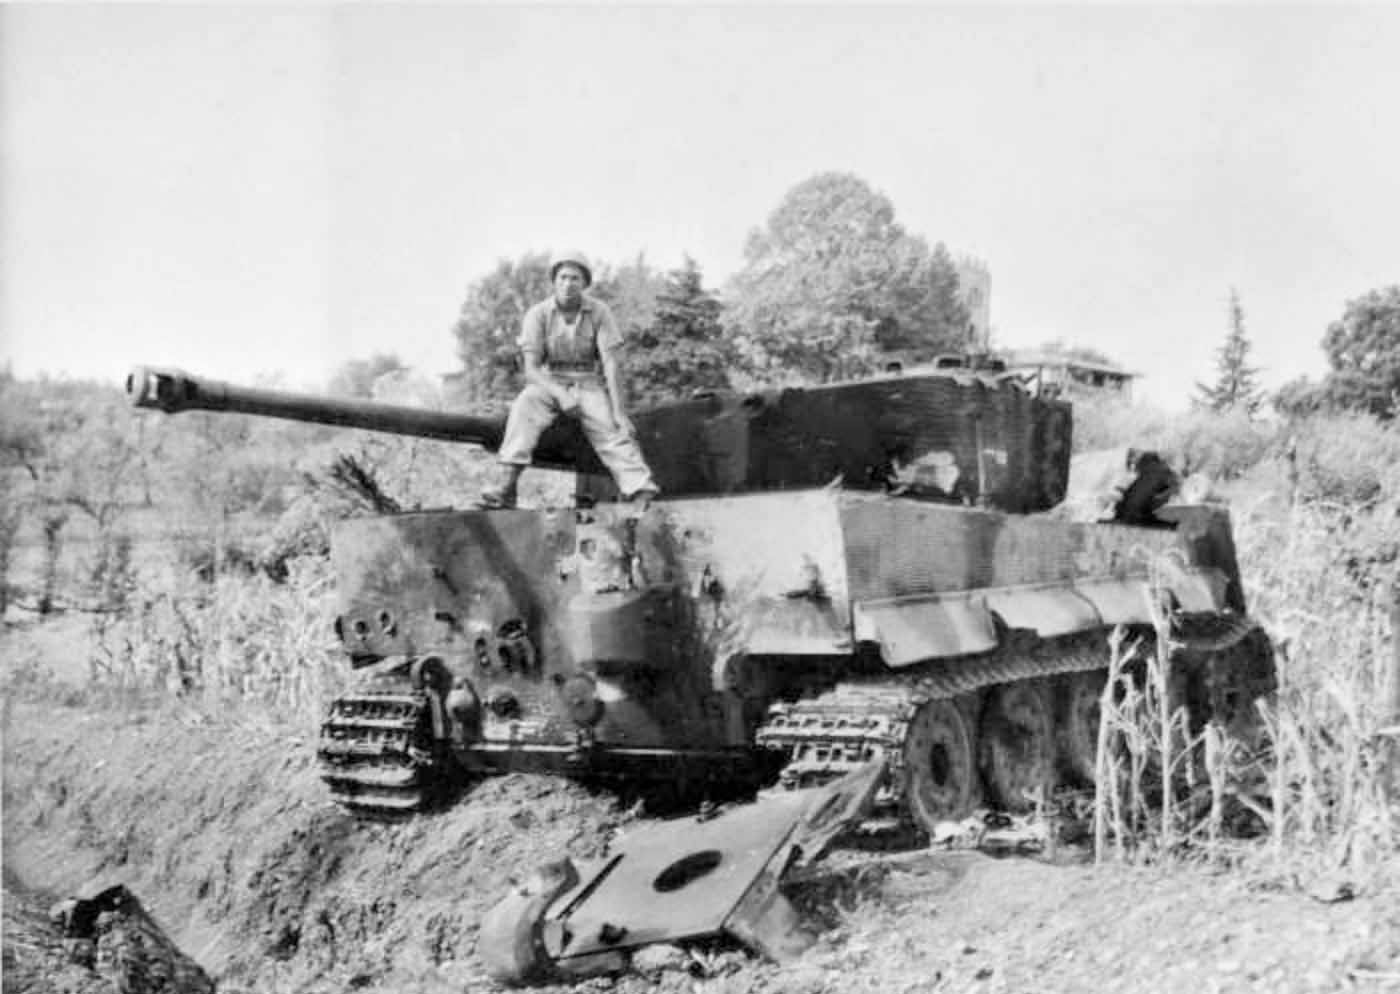 Tiger tank of the 508th Heavy Panzer Battalion (Late Production)